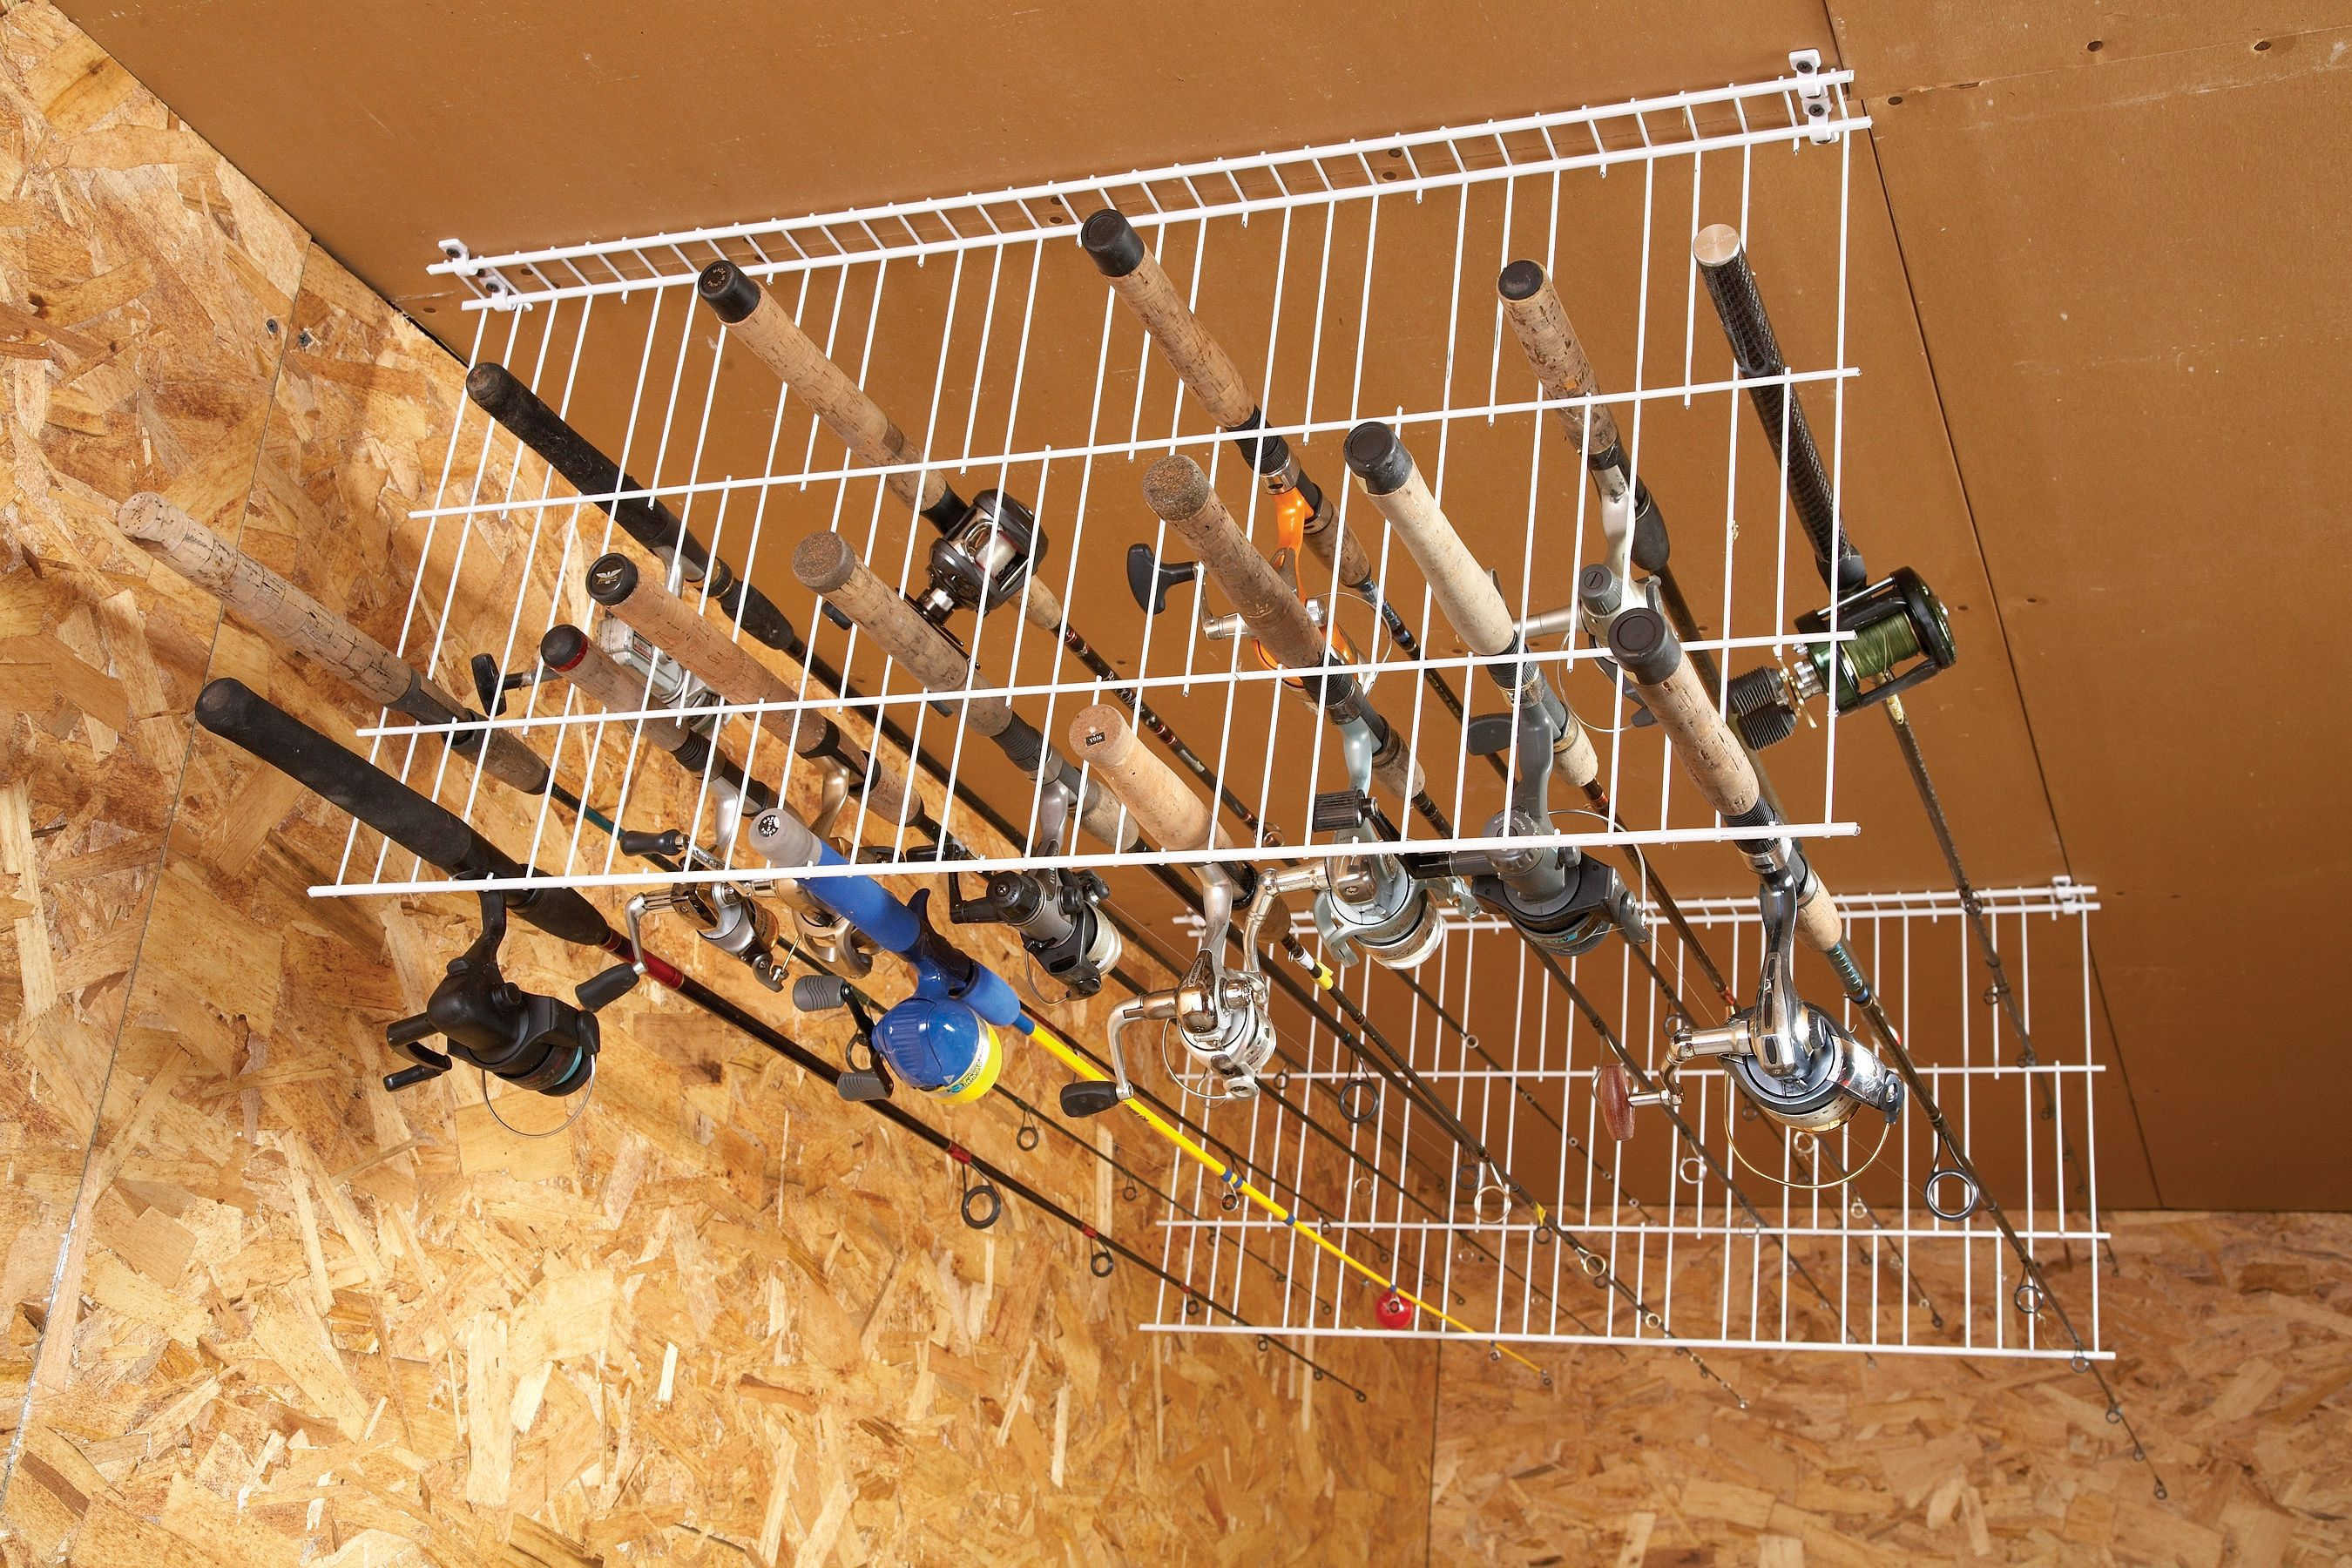 Sneak peek ingenious garage storage ideas fishing rod for Homemade fishing rod storage ideas